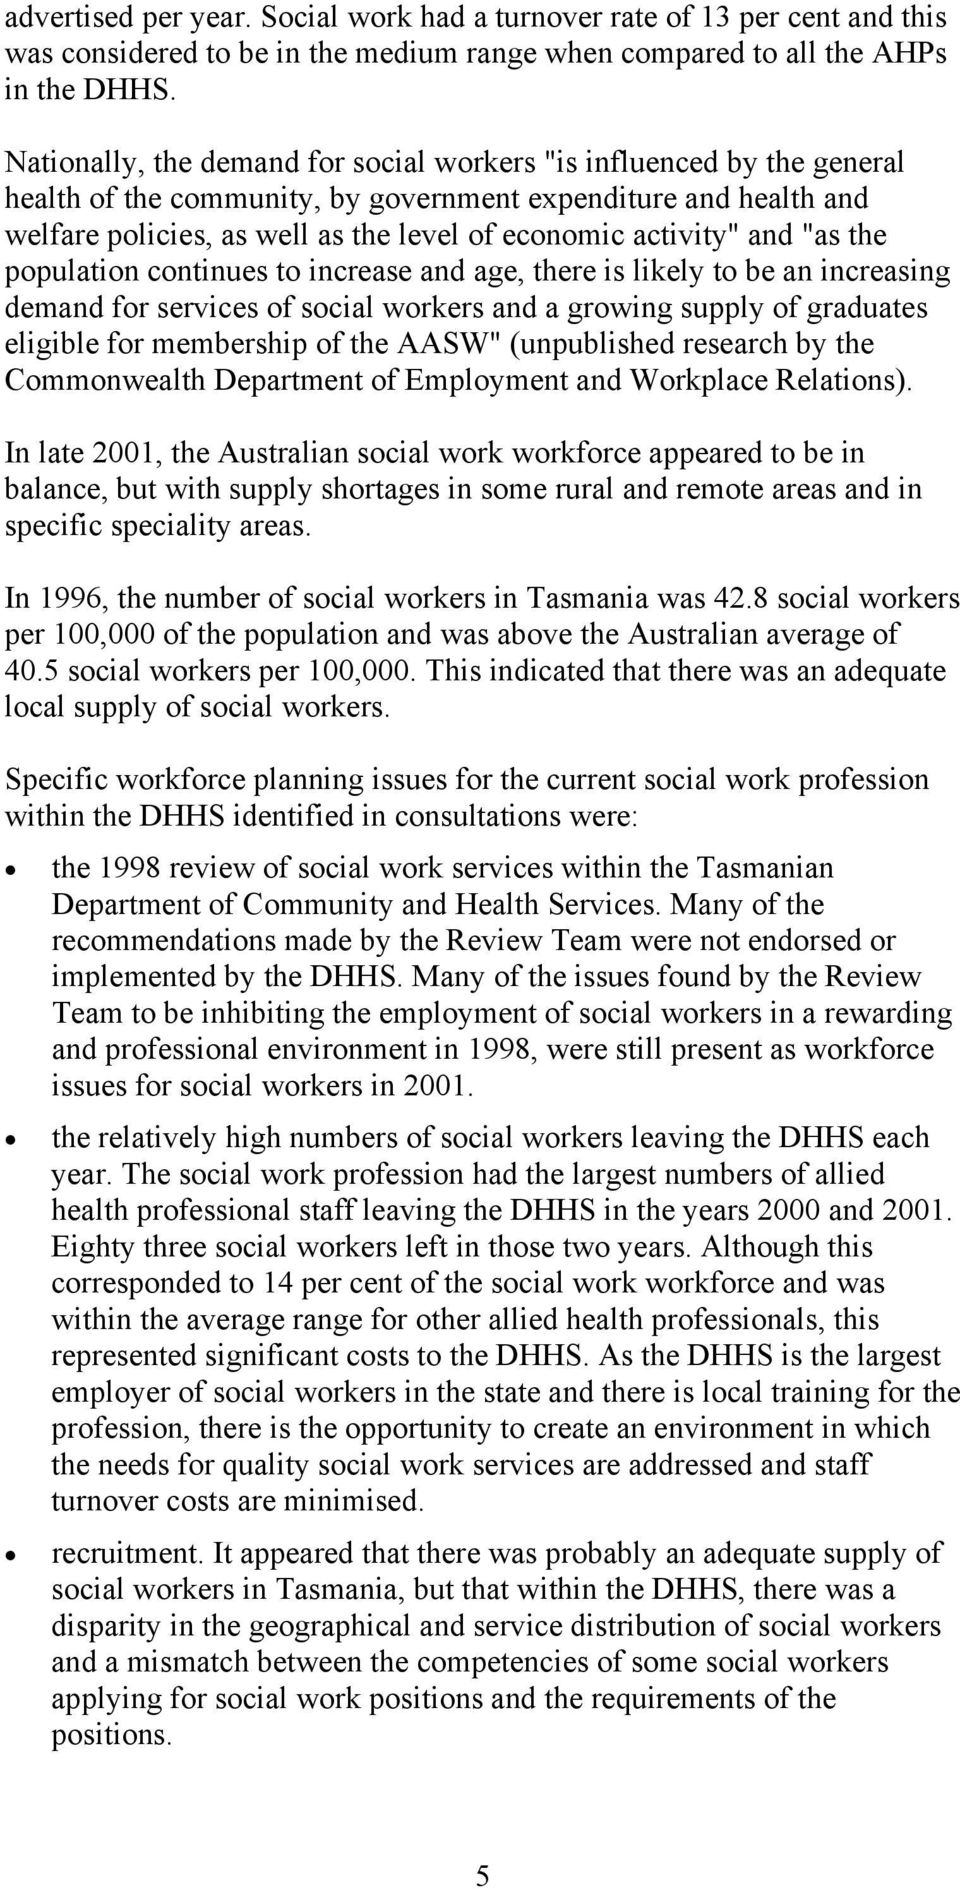 "and ""as the population continues to increase and age, there is likely to be an increasing demand for services of social workers and a growing supply of graduates eligible for membership of the AASW"""